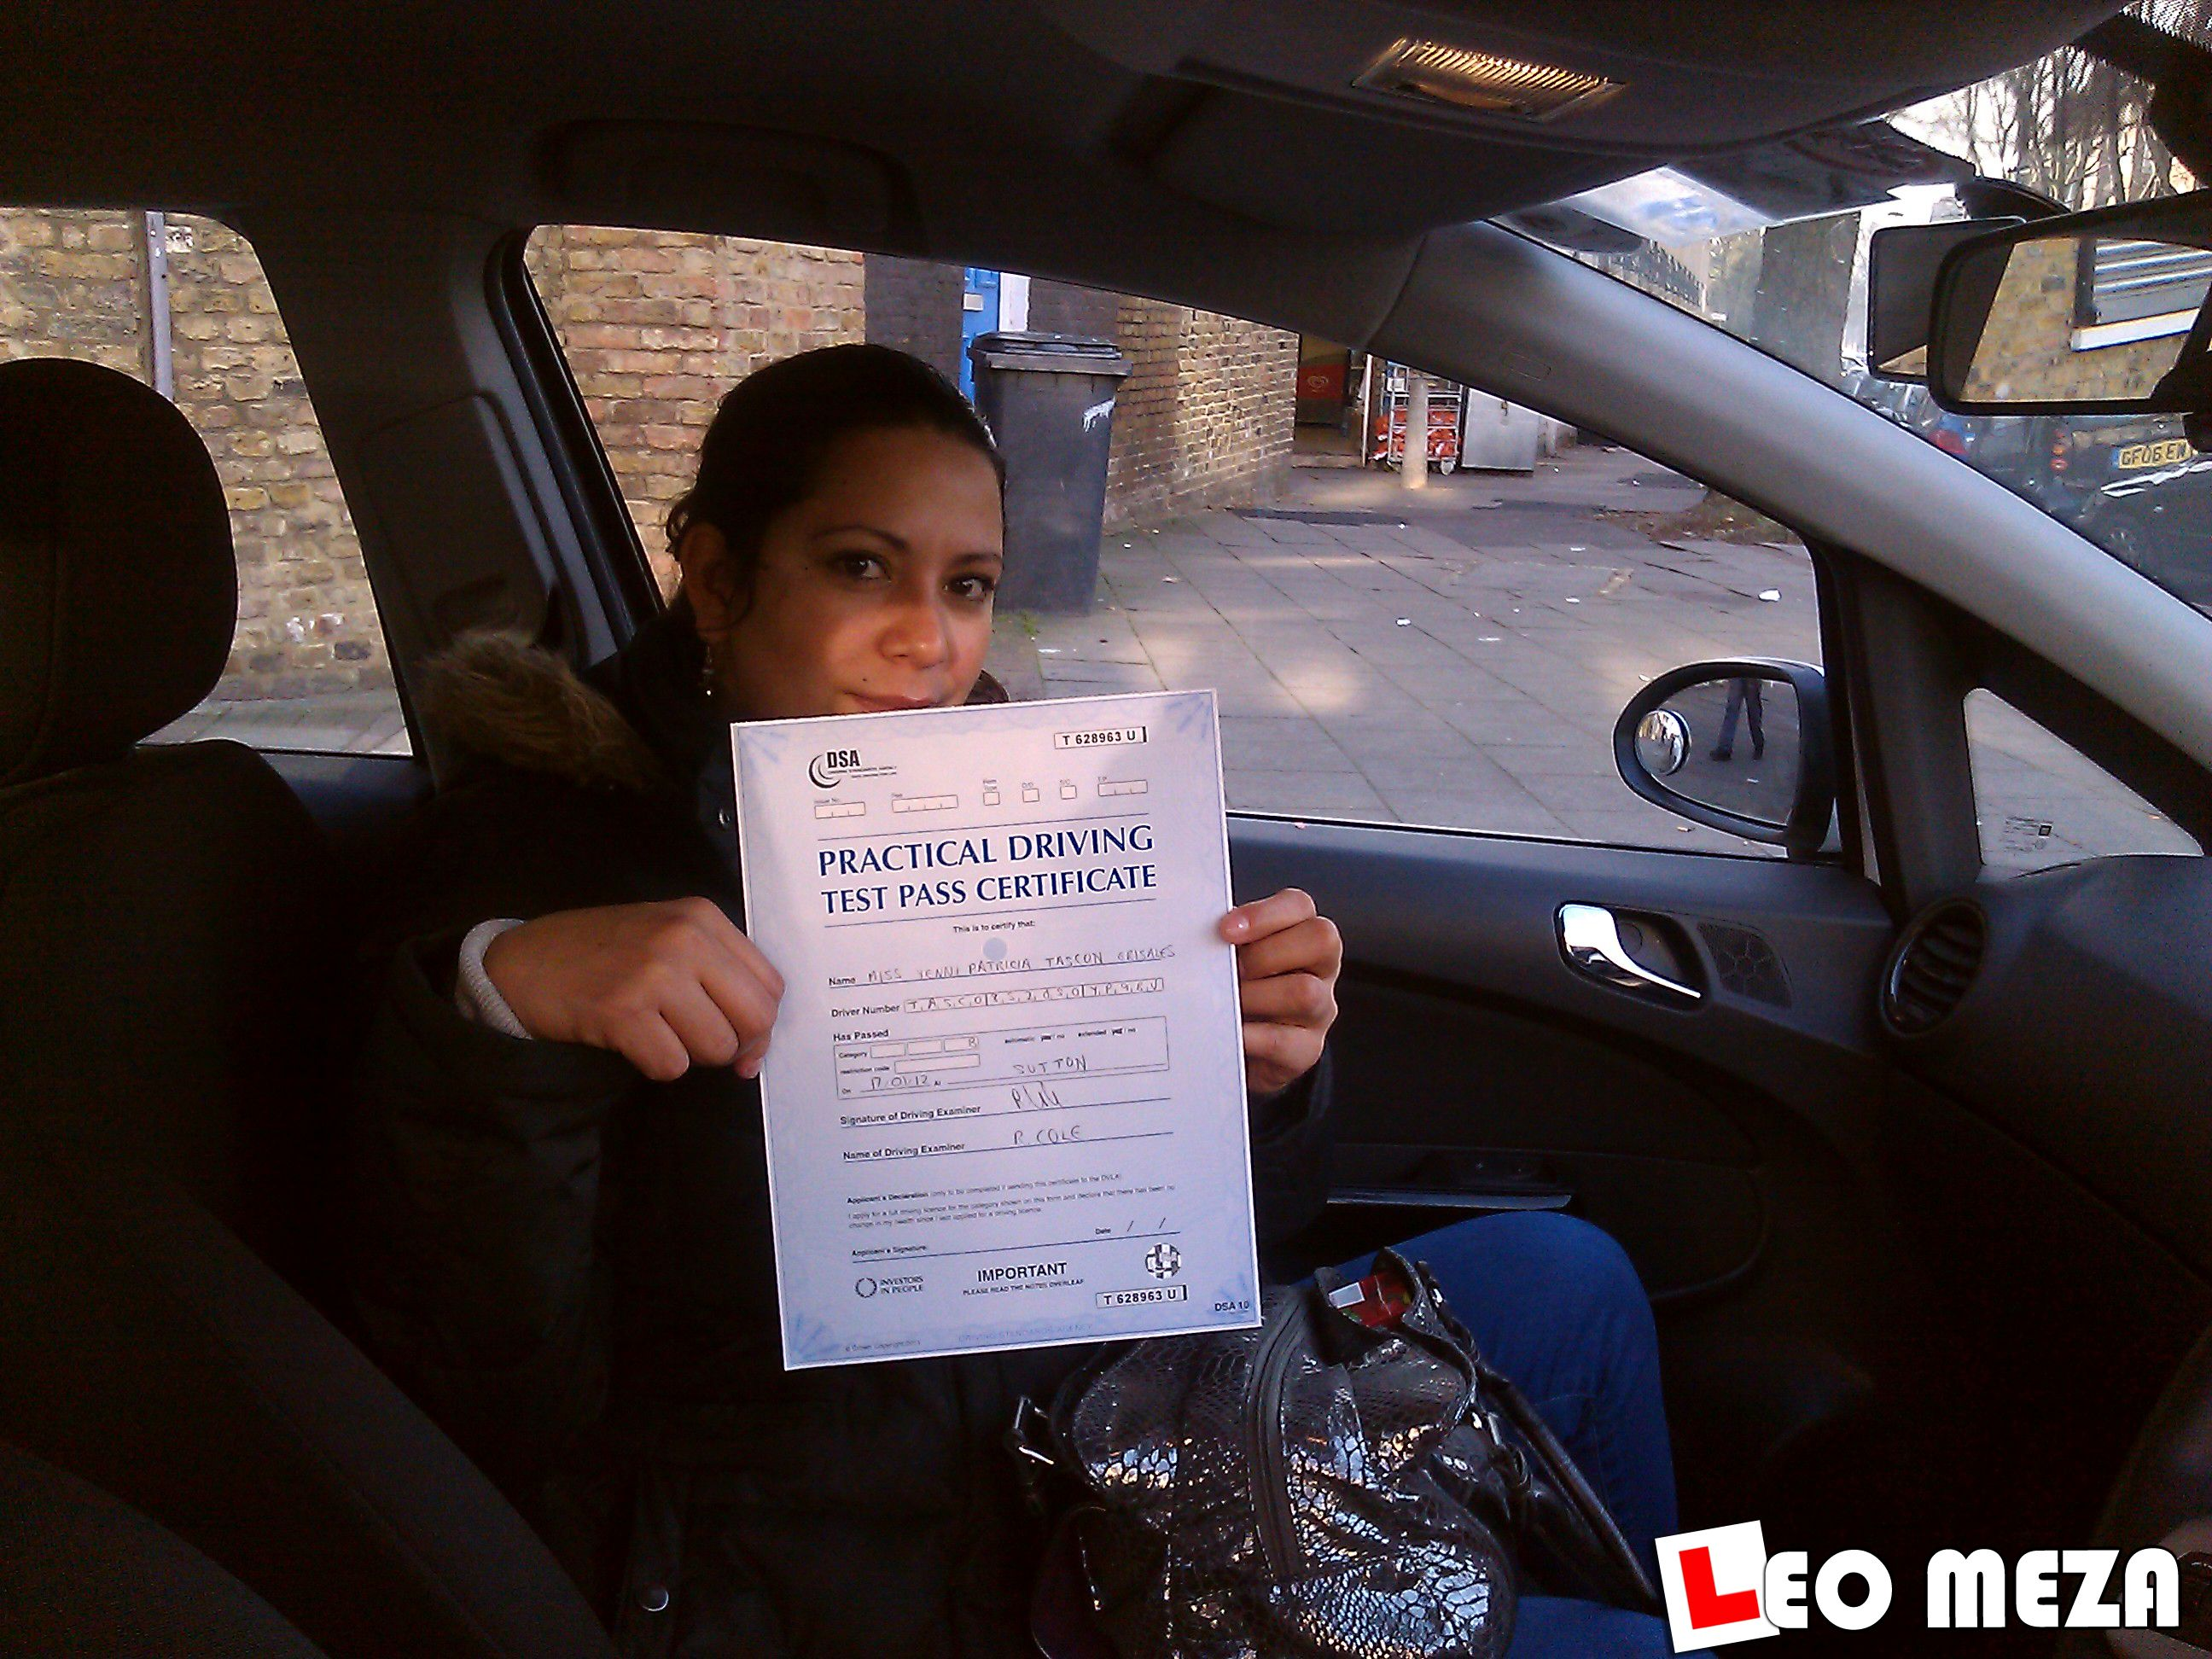 Well done to ►► YENNY ◄◄ for passing her driving test at Morden T.C